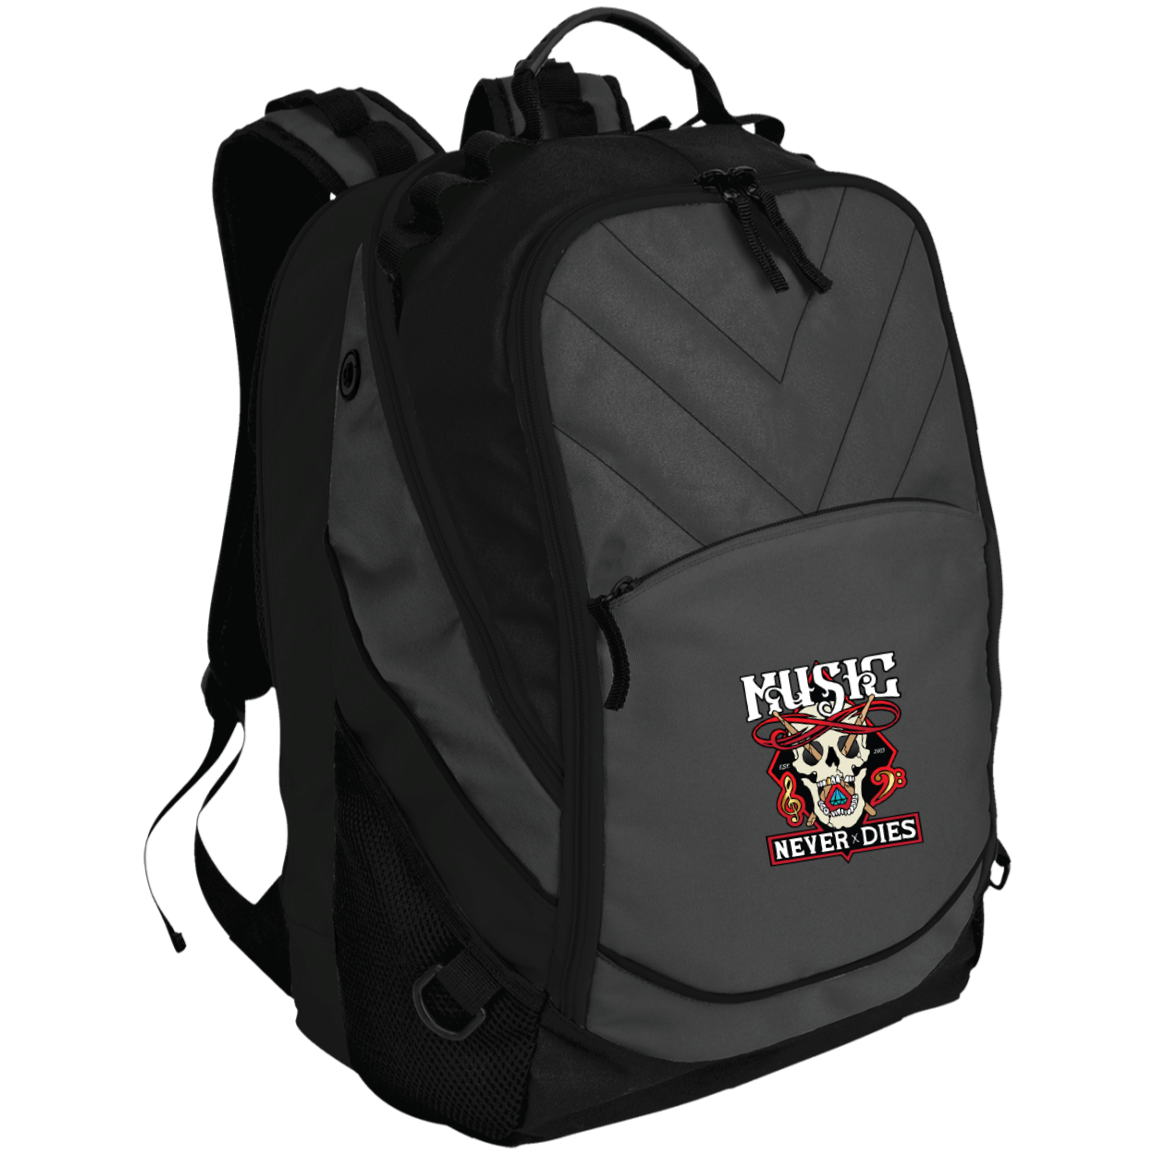 Music Never Dies Laptop Computer Backpack